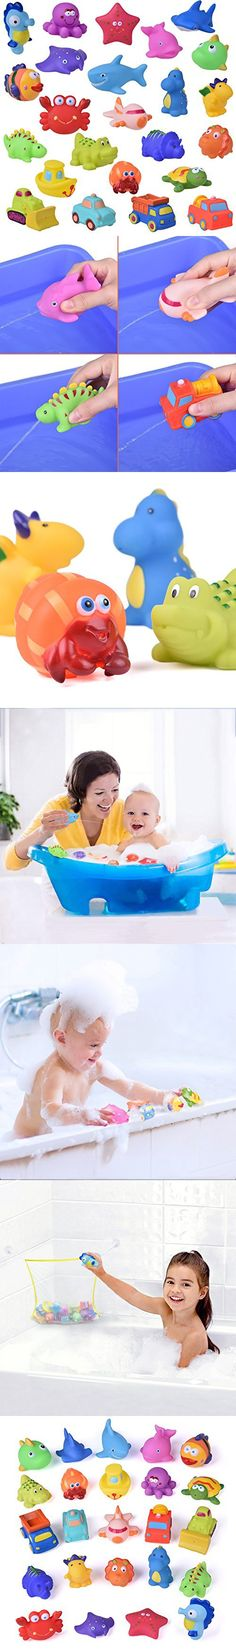 Orderly Baby Bathtub Toys Fishing Game Bath Tub Floating Squirt Water Fish Kids Toddler Suitable For Men And Women Of All Ages In All Seasons Bathing Accessories Bathing & Grooming